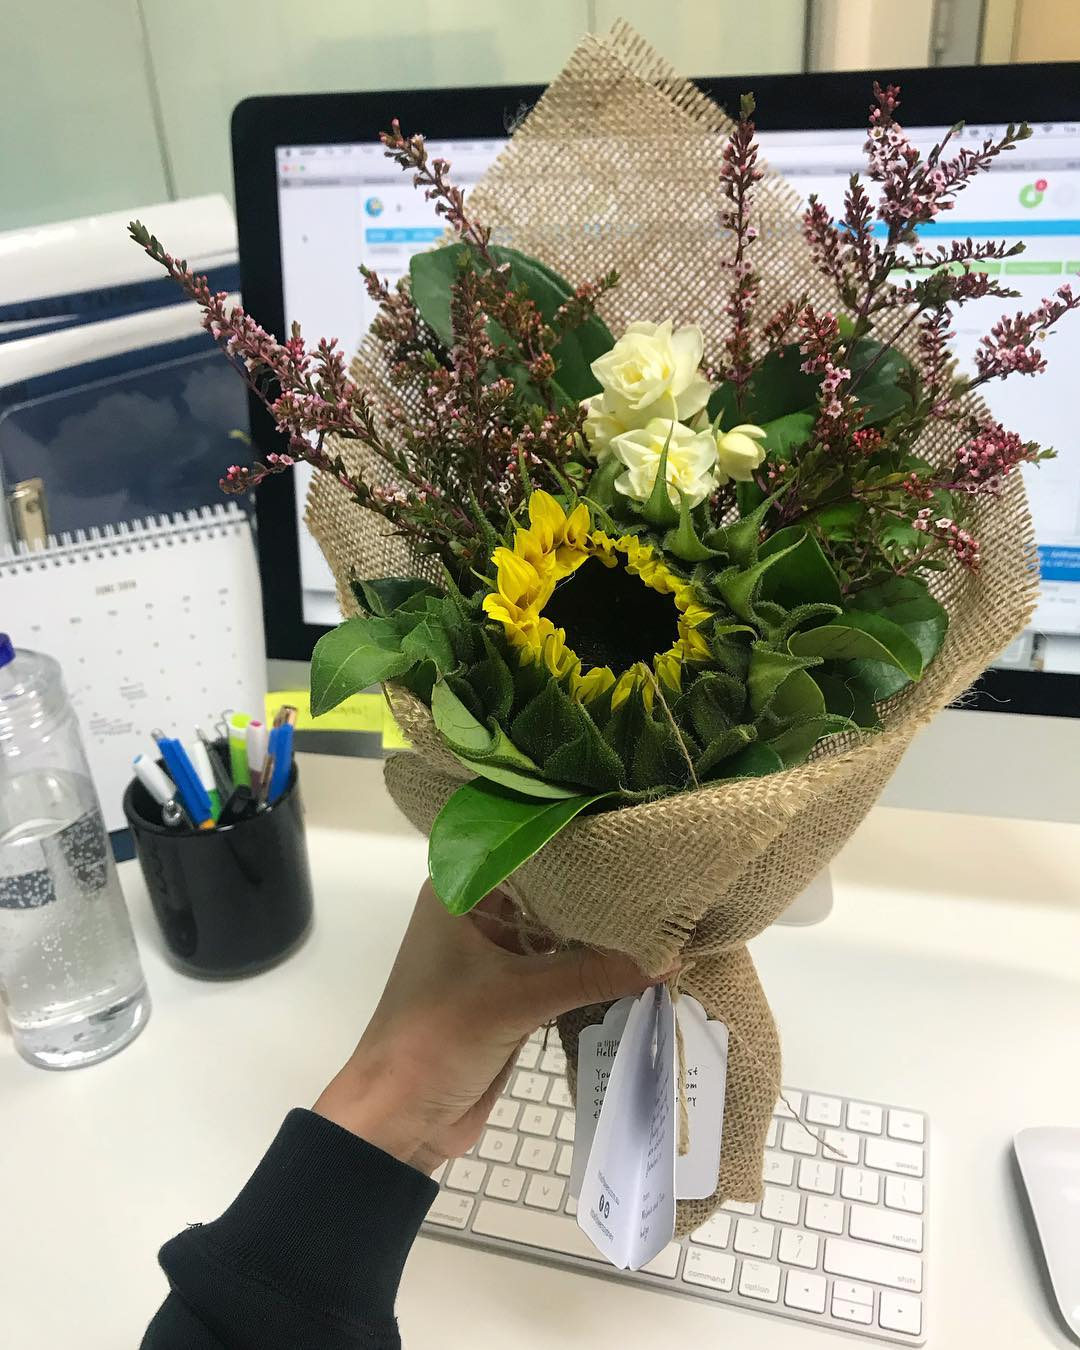 Beautiful flowers from a happy client after successfully placing a Lending Advisor for them �� Thank you